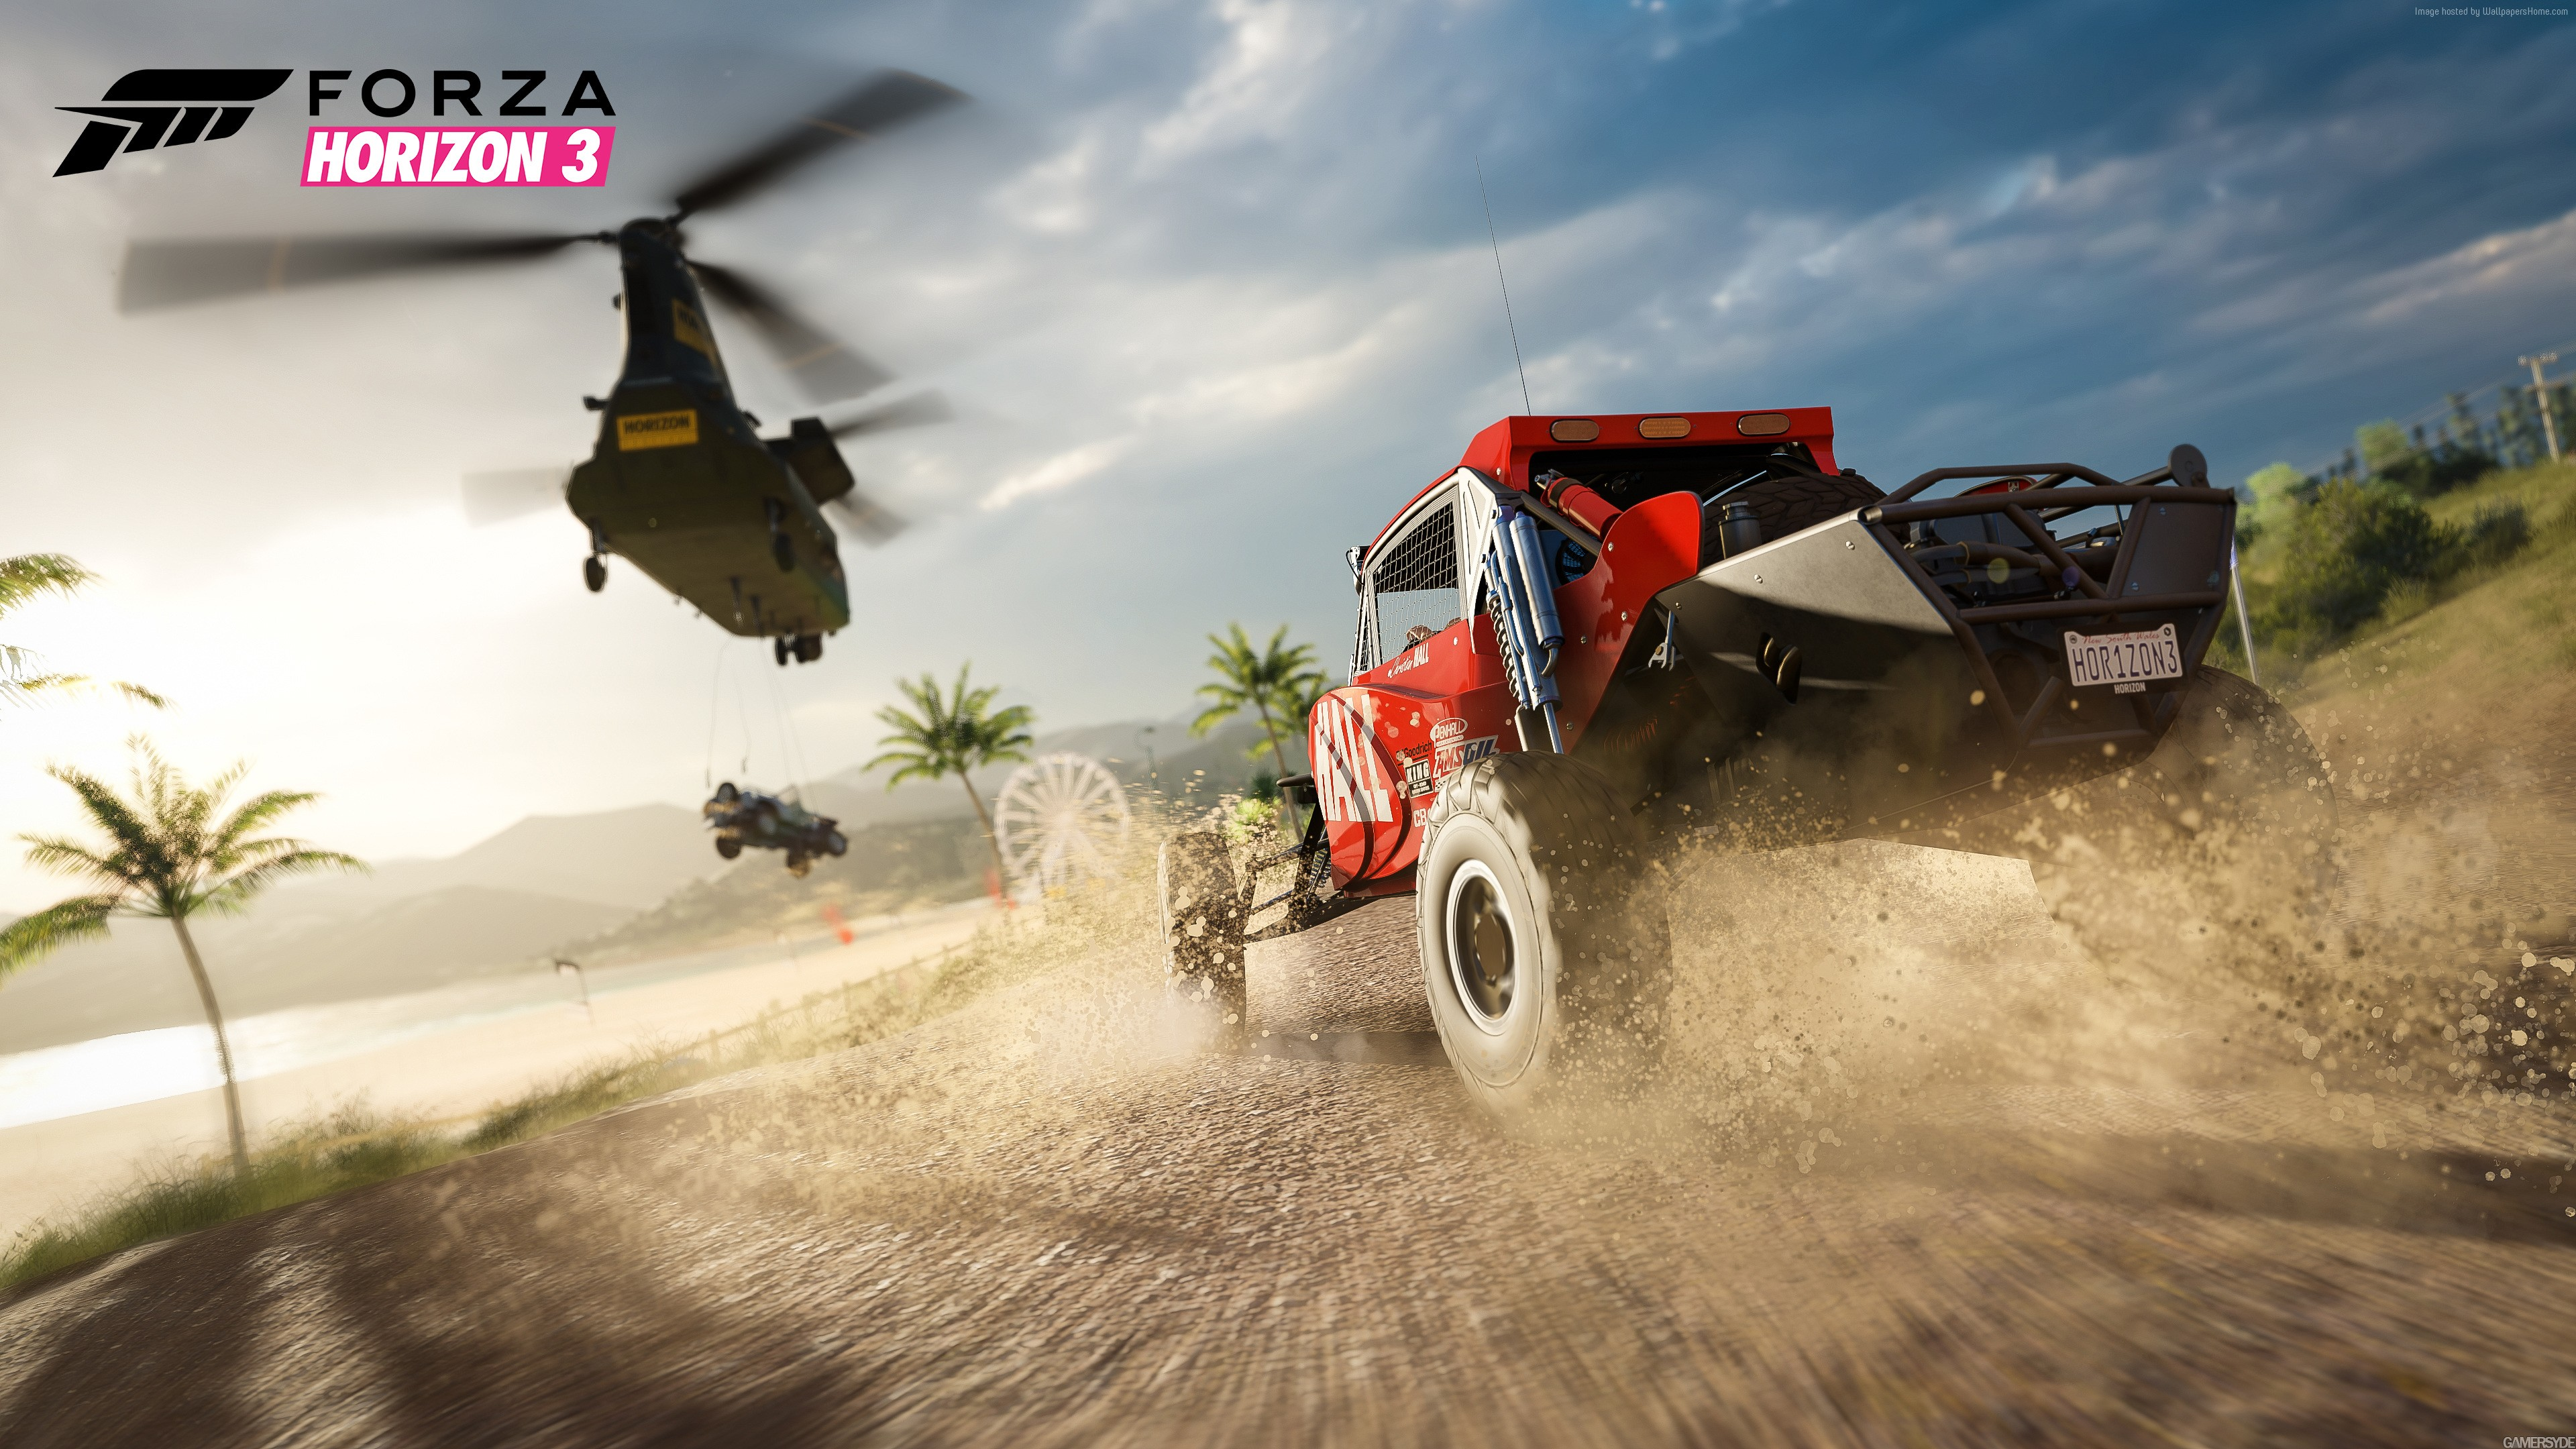 Wallpaper Forza Horizon 3, racing, extreme, E3 2016, best games, PlayStation 4, Xbox One, Windows, Best Games, Sport